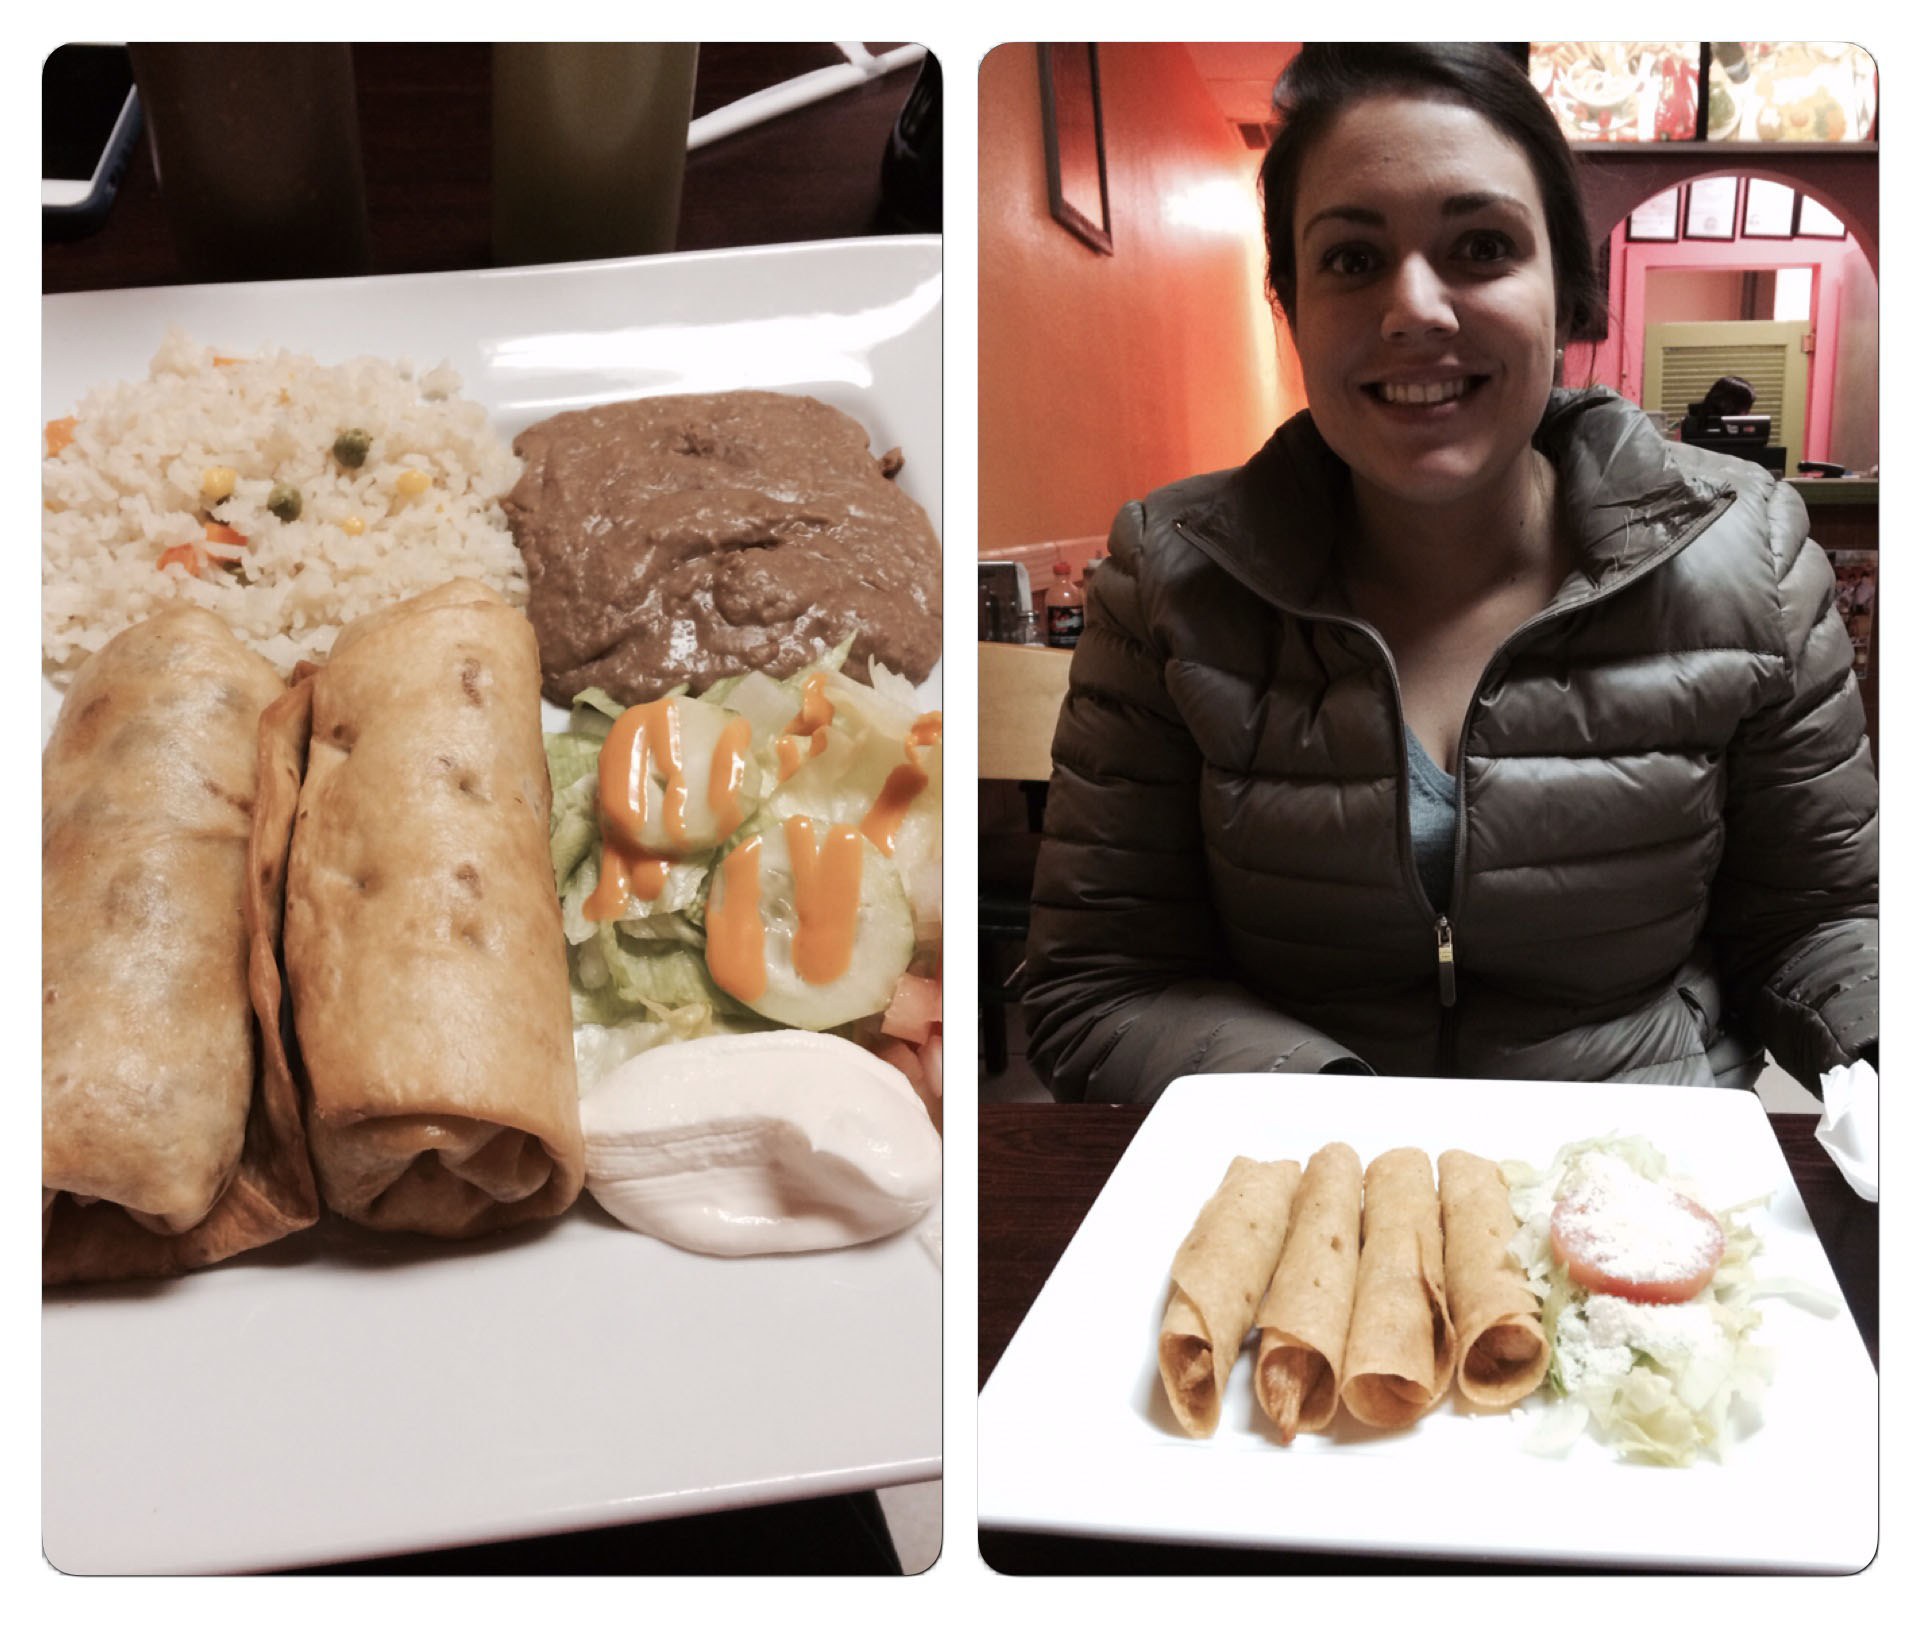 My food is on the left while Sid's is on the right.